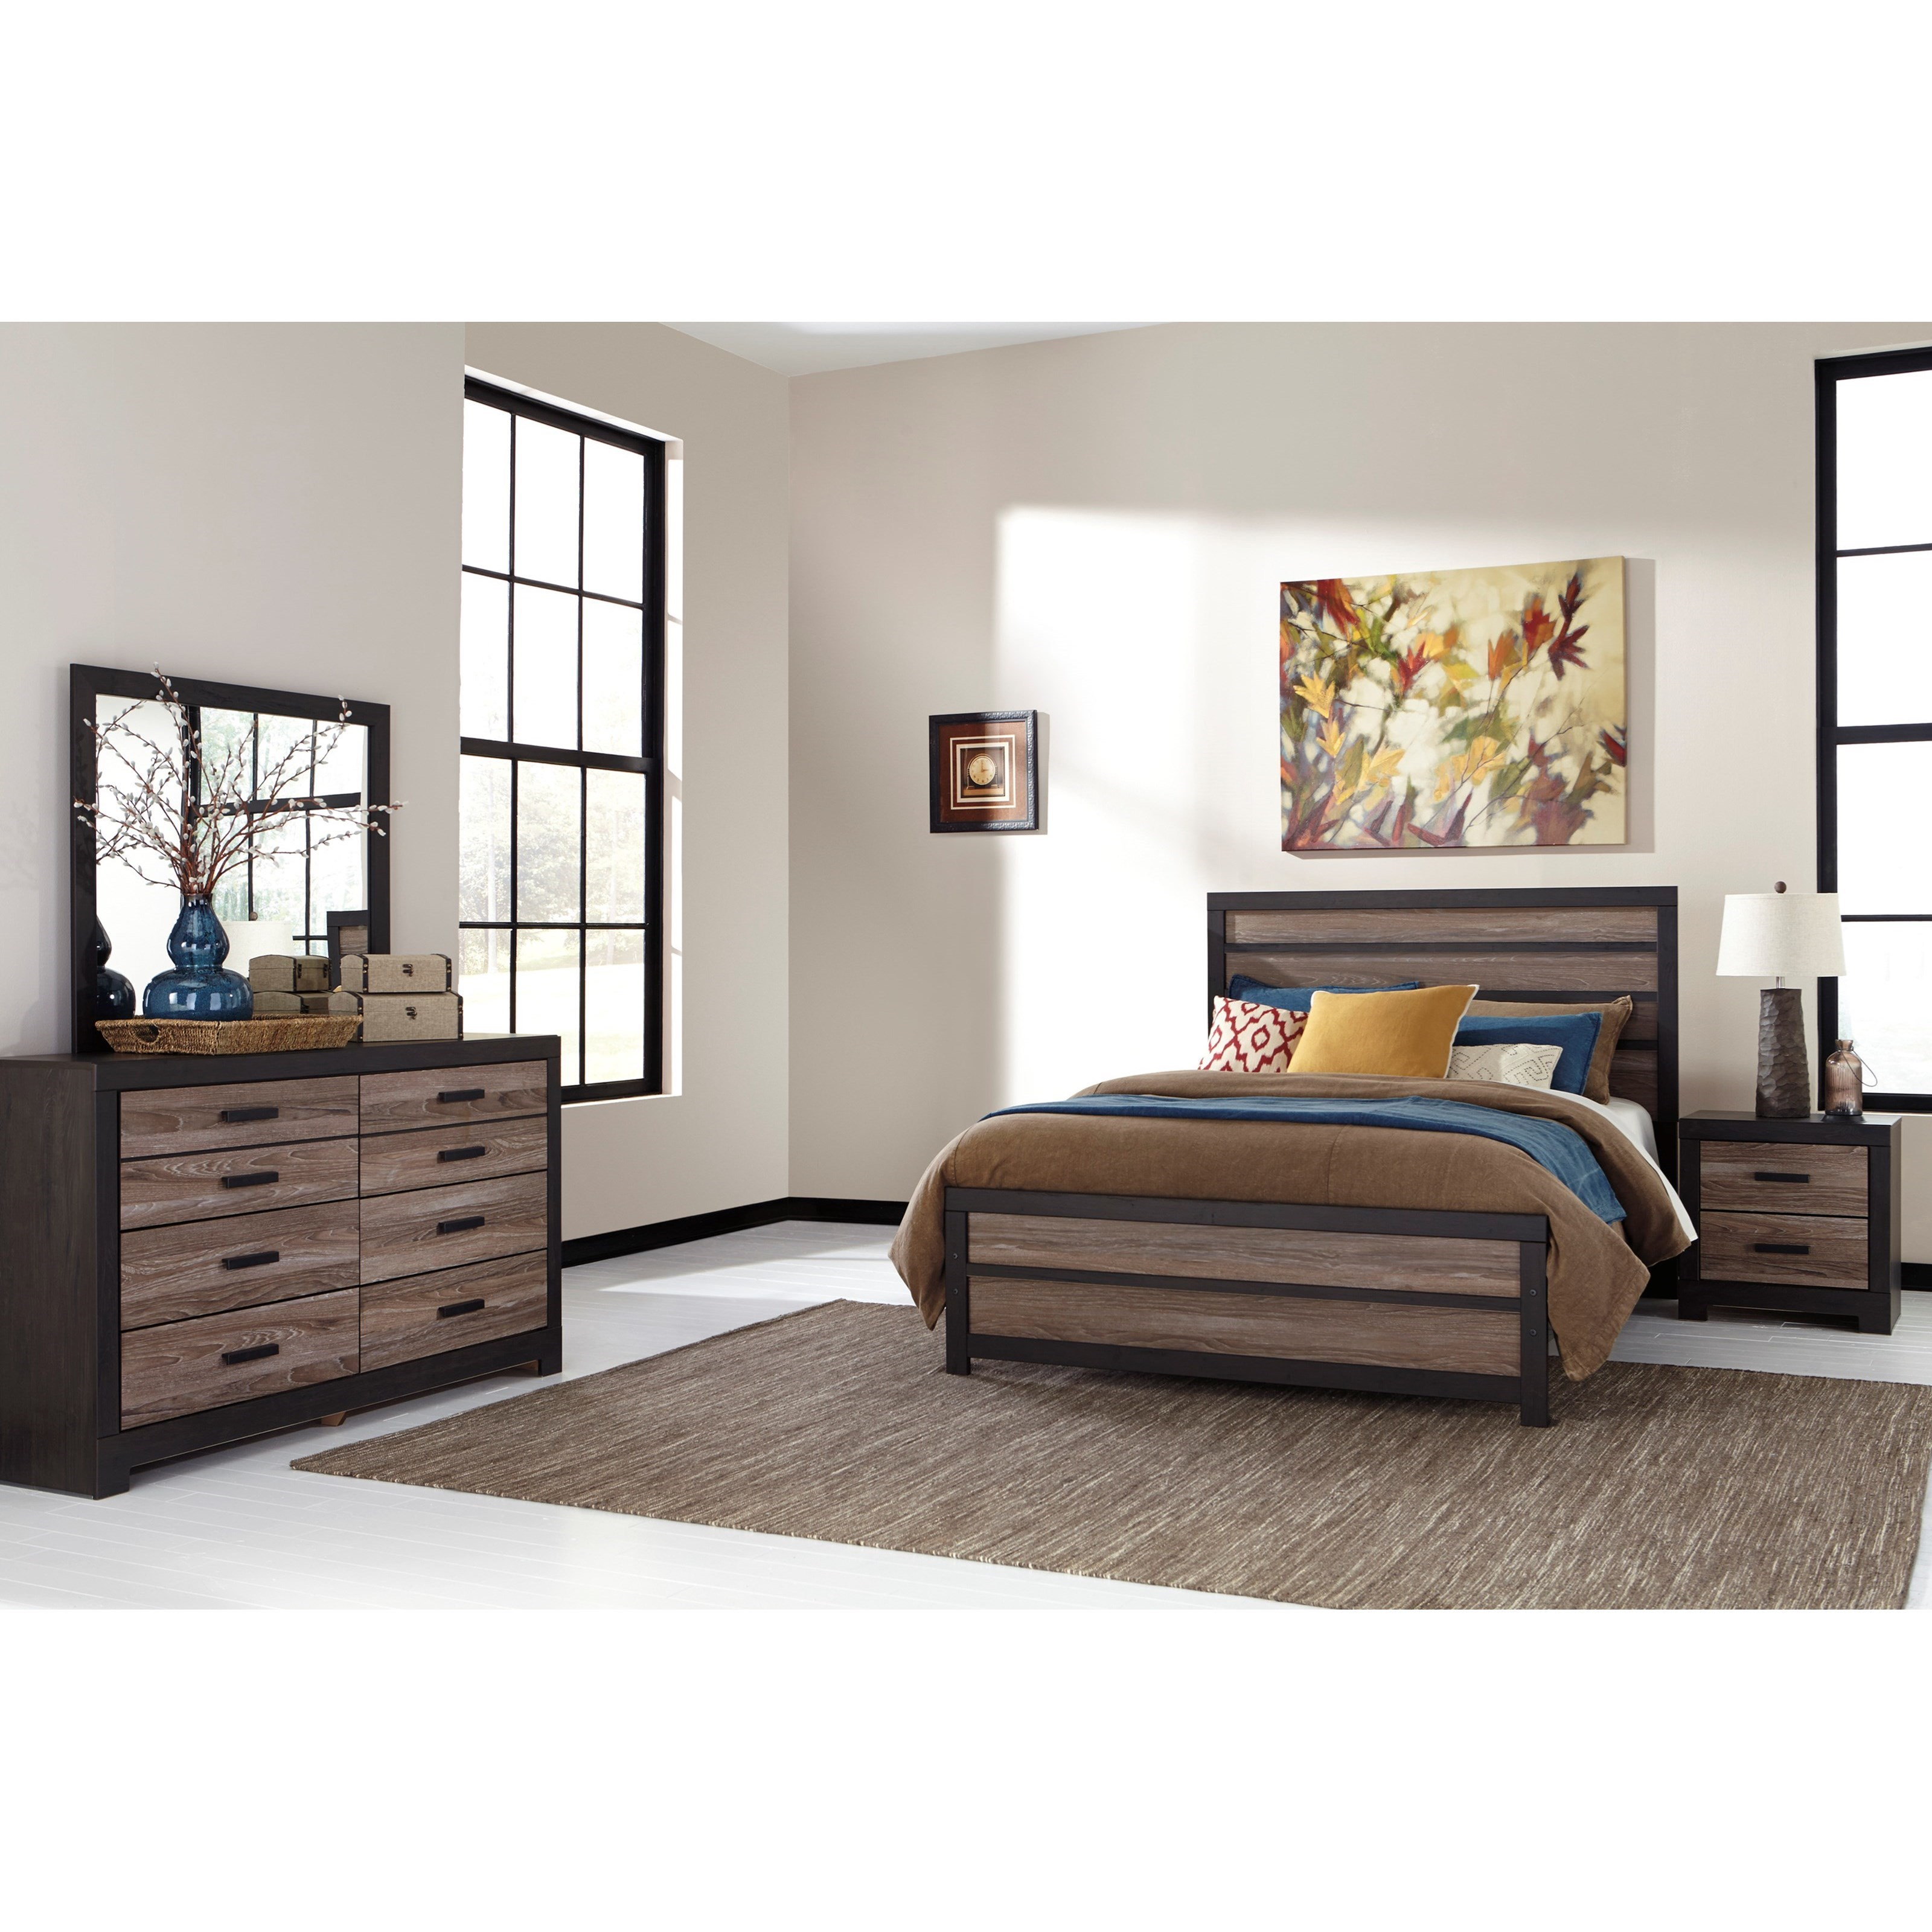 Harlinton Queen Bedroom Group by Signature Design by Ashley at Home Furnishings Direct